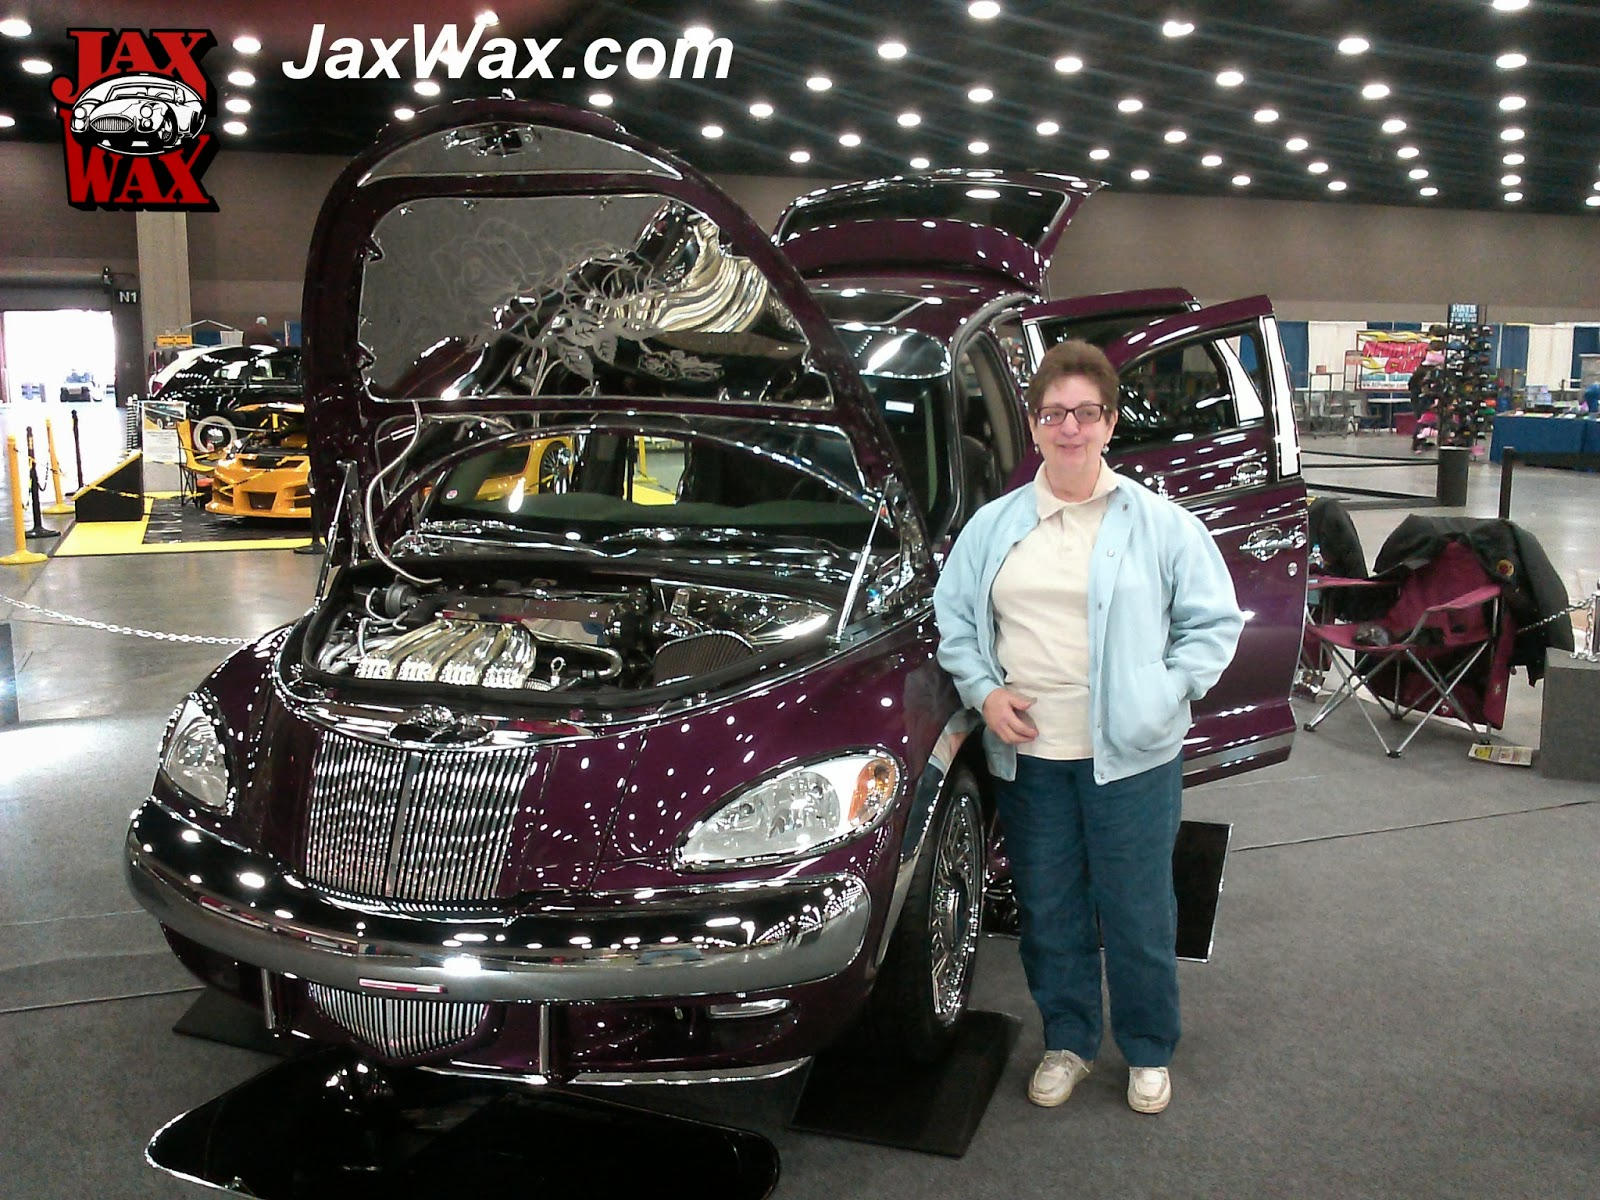 2001 PT Cruiser Carl Casper Auto Show Jax Wax Customer